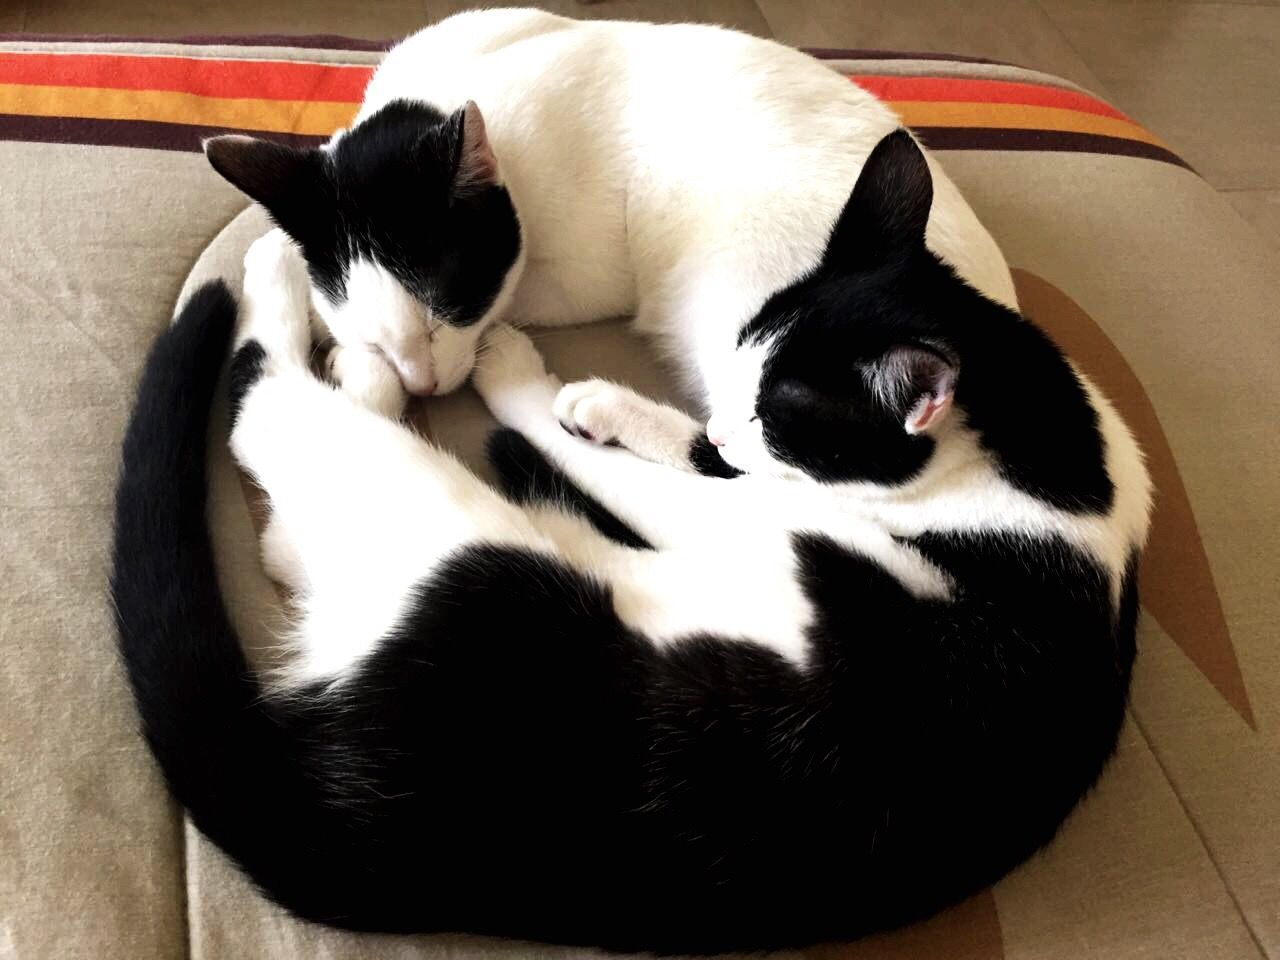 pets, domestic animals, mammal, dog, sleeping, animal themes, high angle view, relaxation, black color, no people, indoors, day